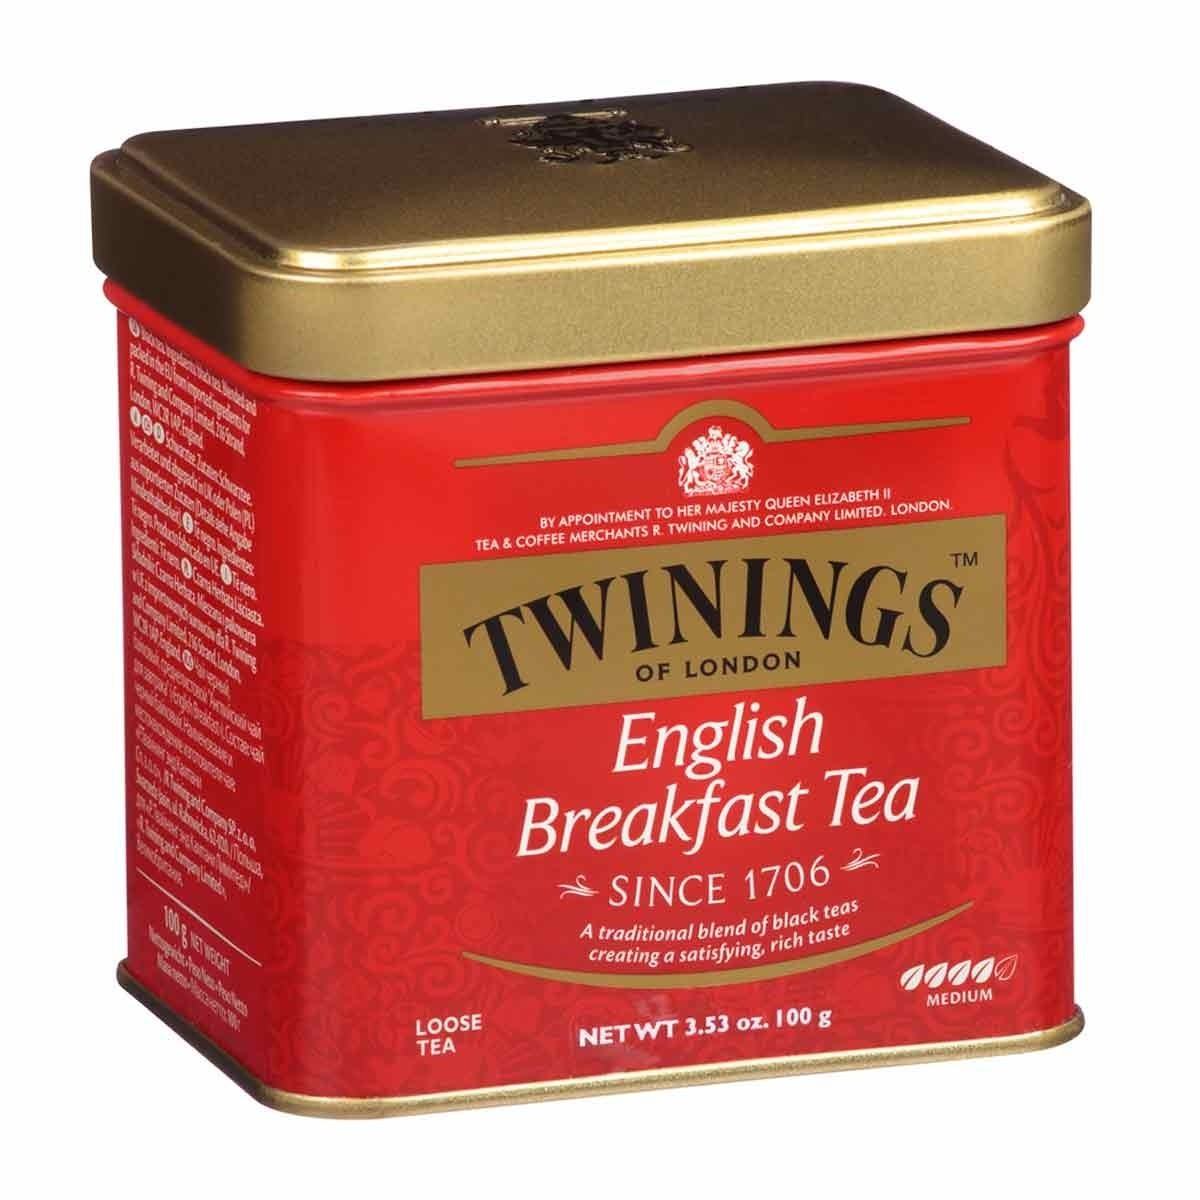 Twinings English Breakfast Tea - 100g